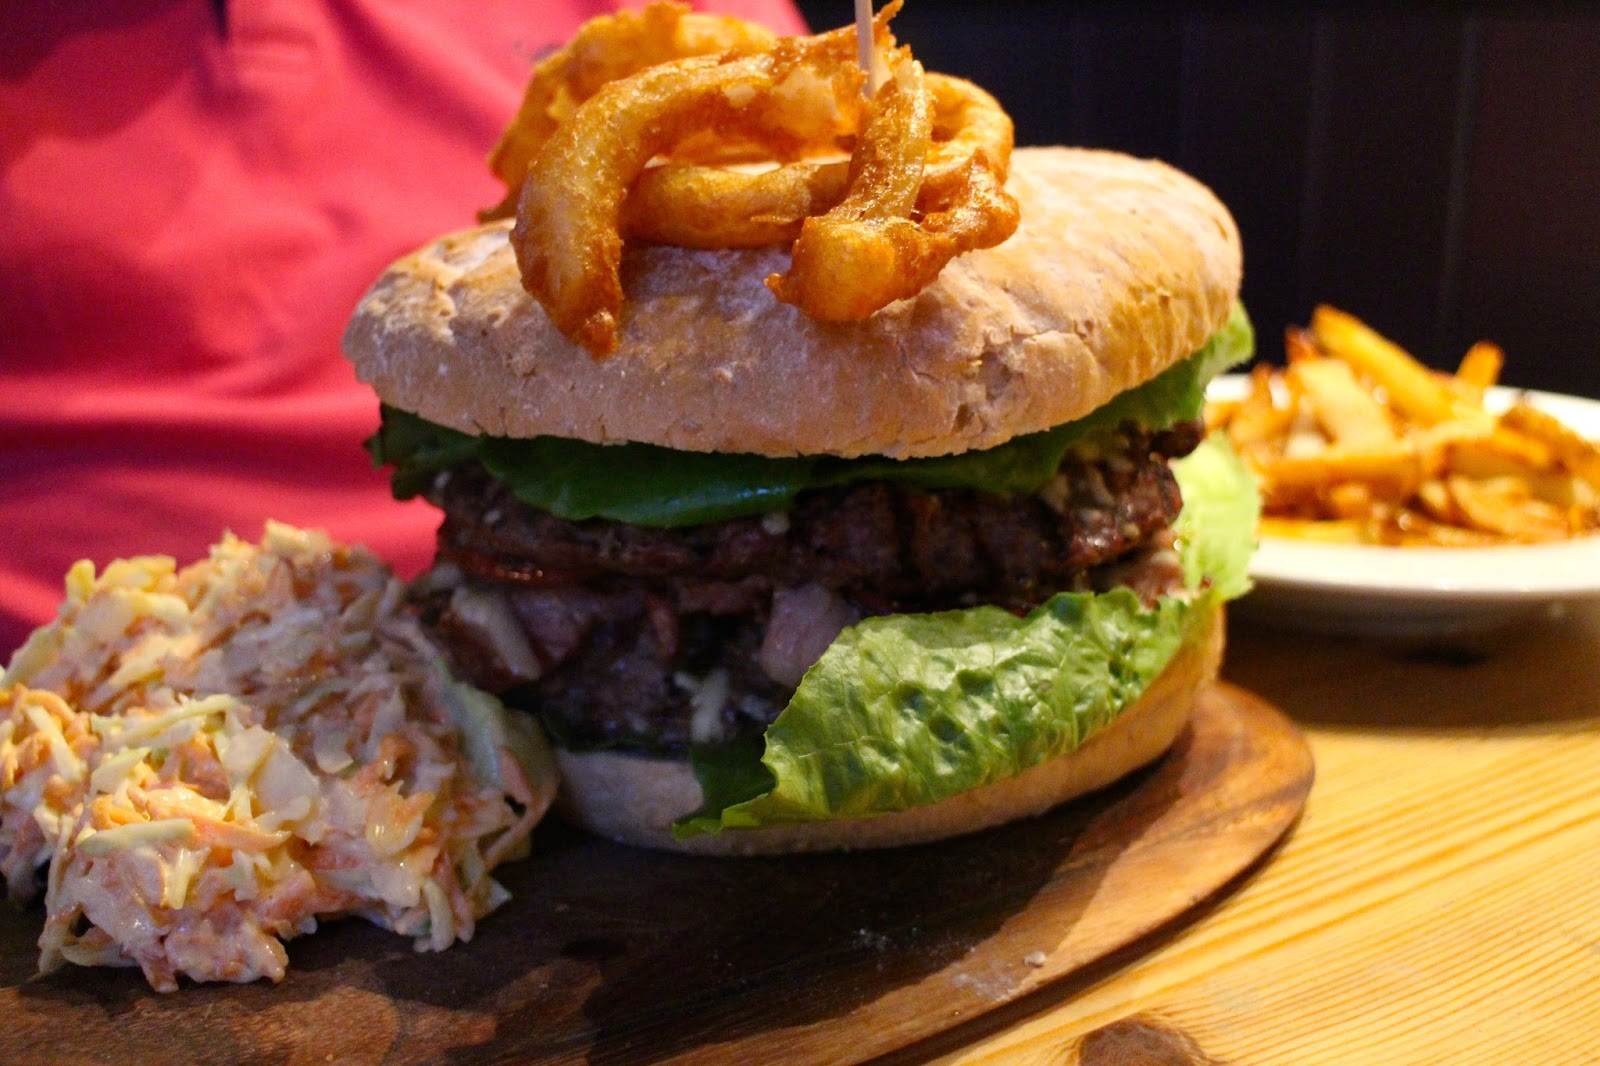 the therminator burger